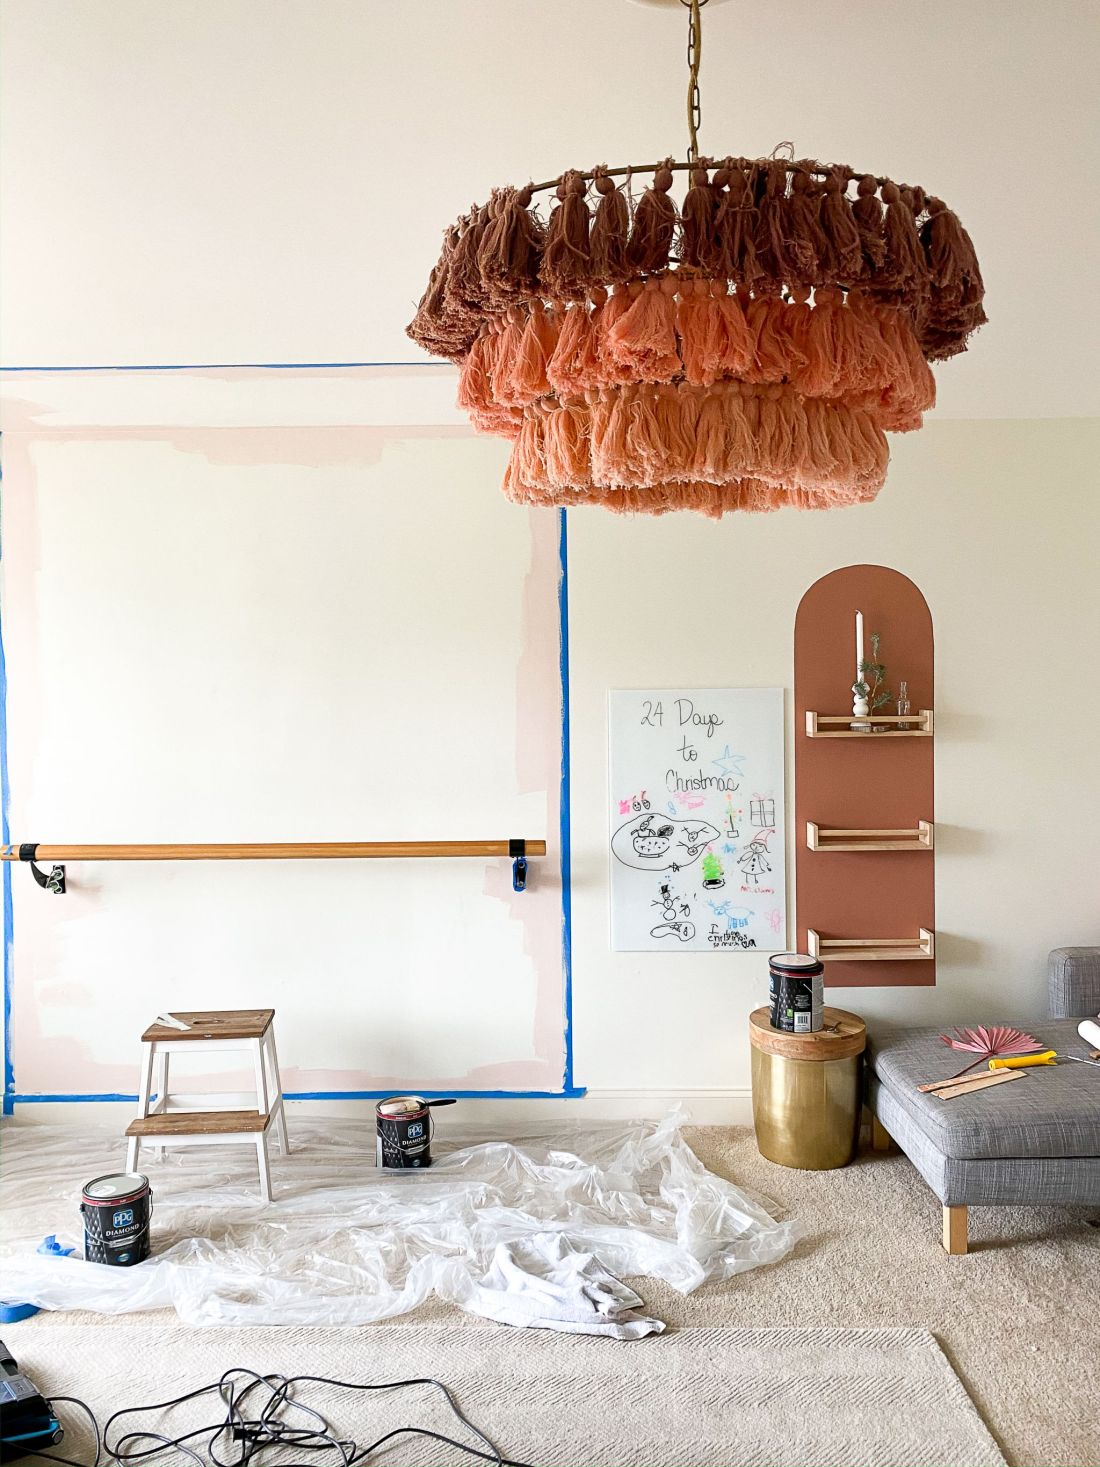 Geometric Shapes Design by popular Nashville life and style blog, Modern Day Moguls: image of a playroom with white walls, ballet bar, pink chairs, exercise trampoline, pink ombre tassel light fixture, and a grey sectional couch.